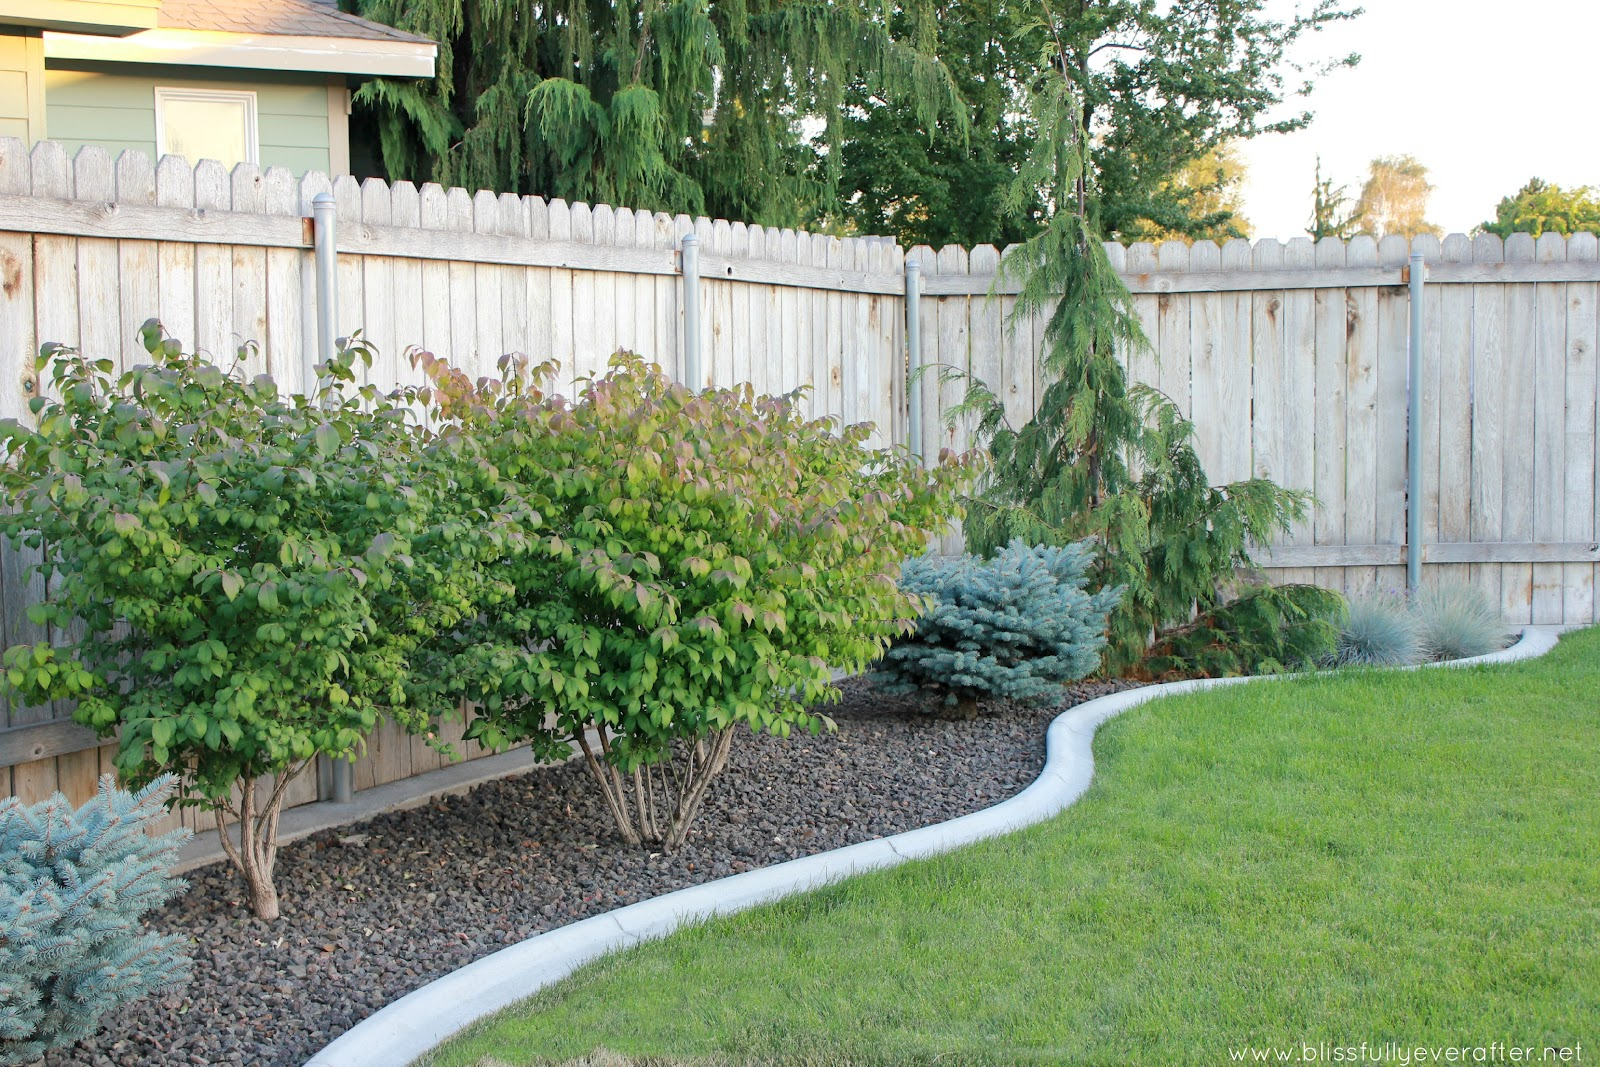 Small Backyard Design Ideas On A Budget back yard landscaping ideas on a budget - backyard design ideas